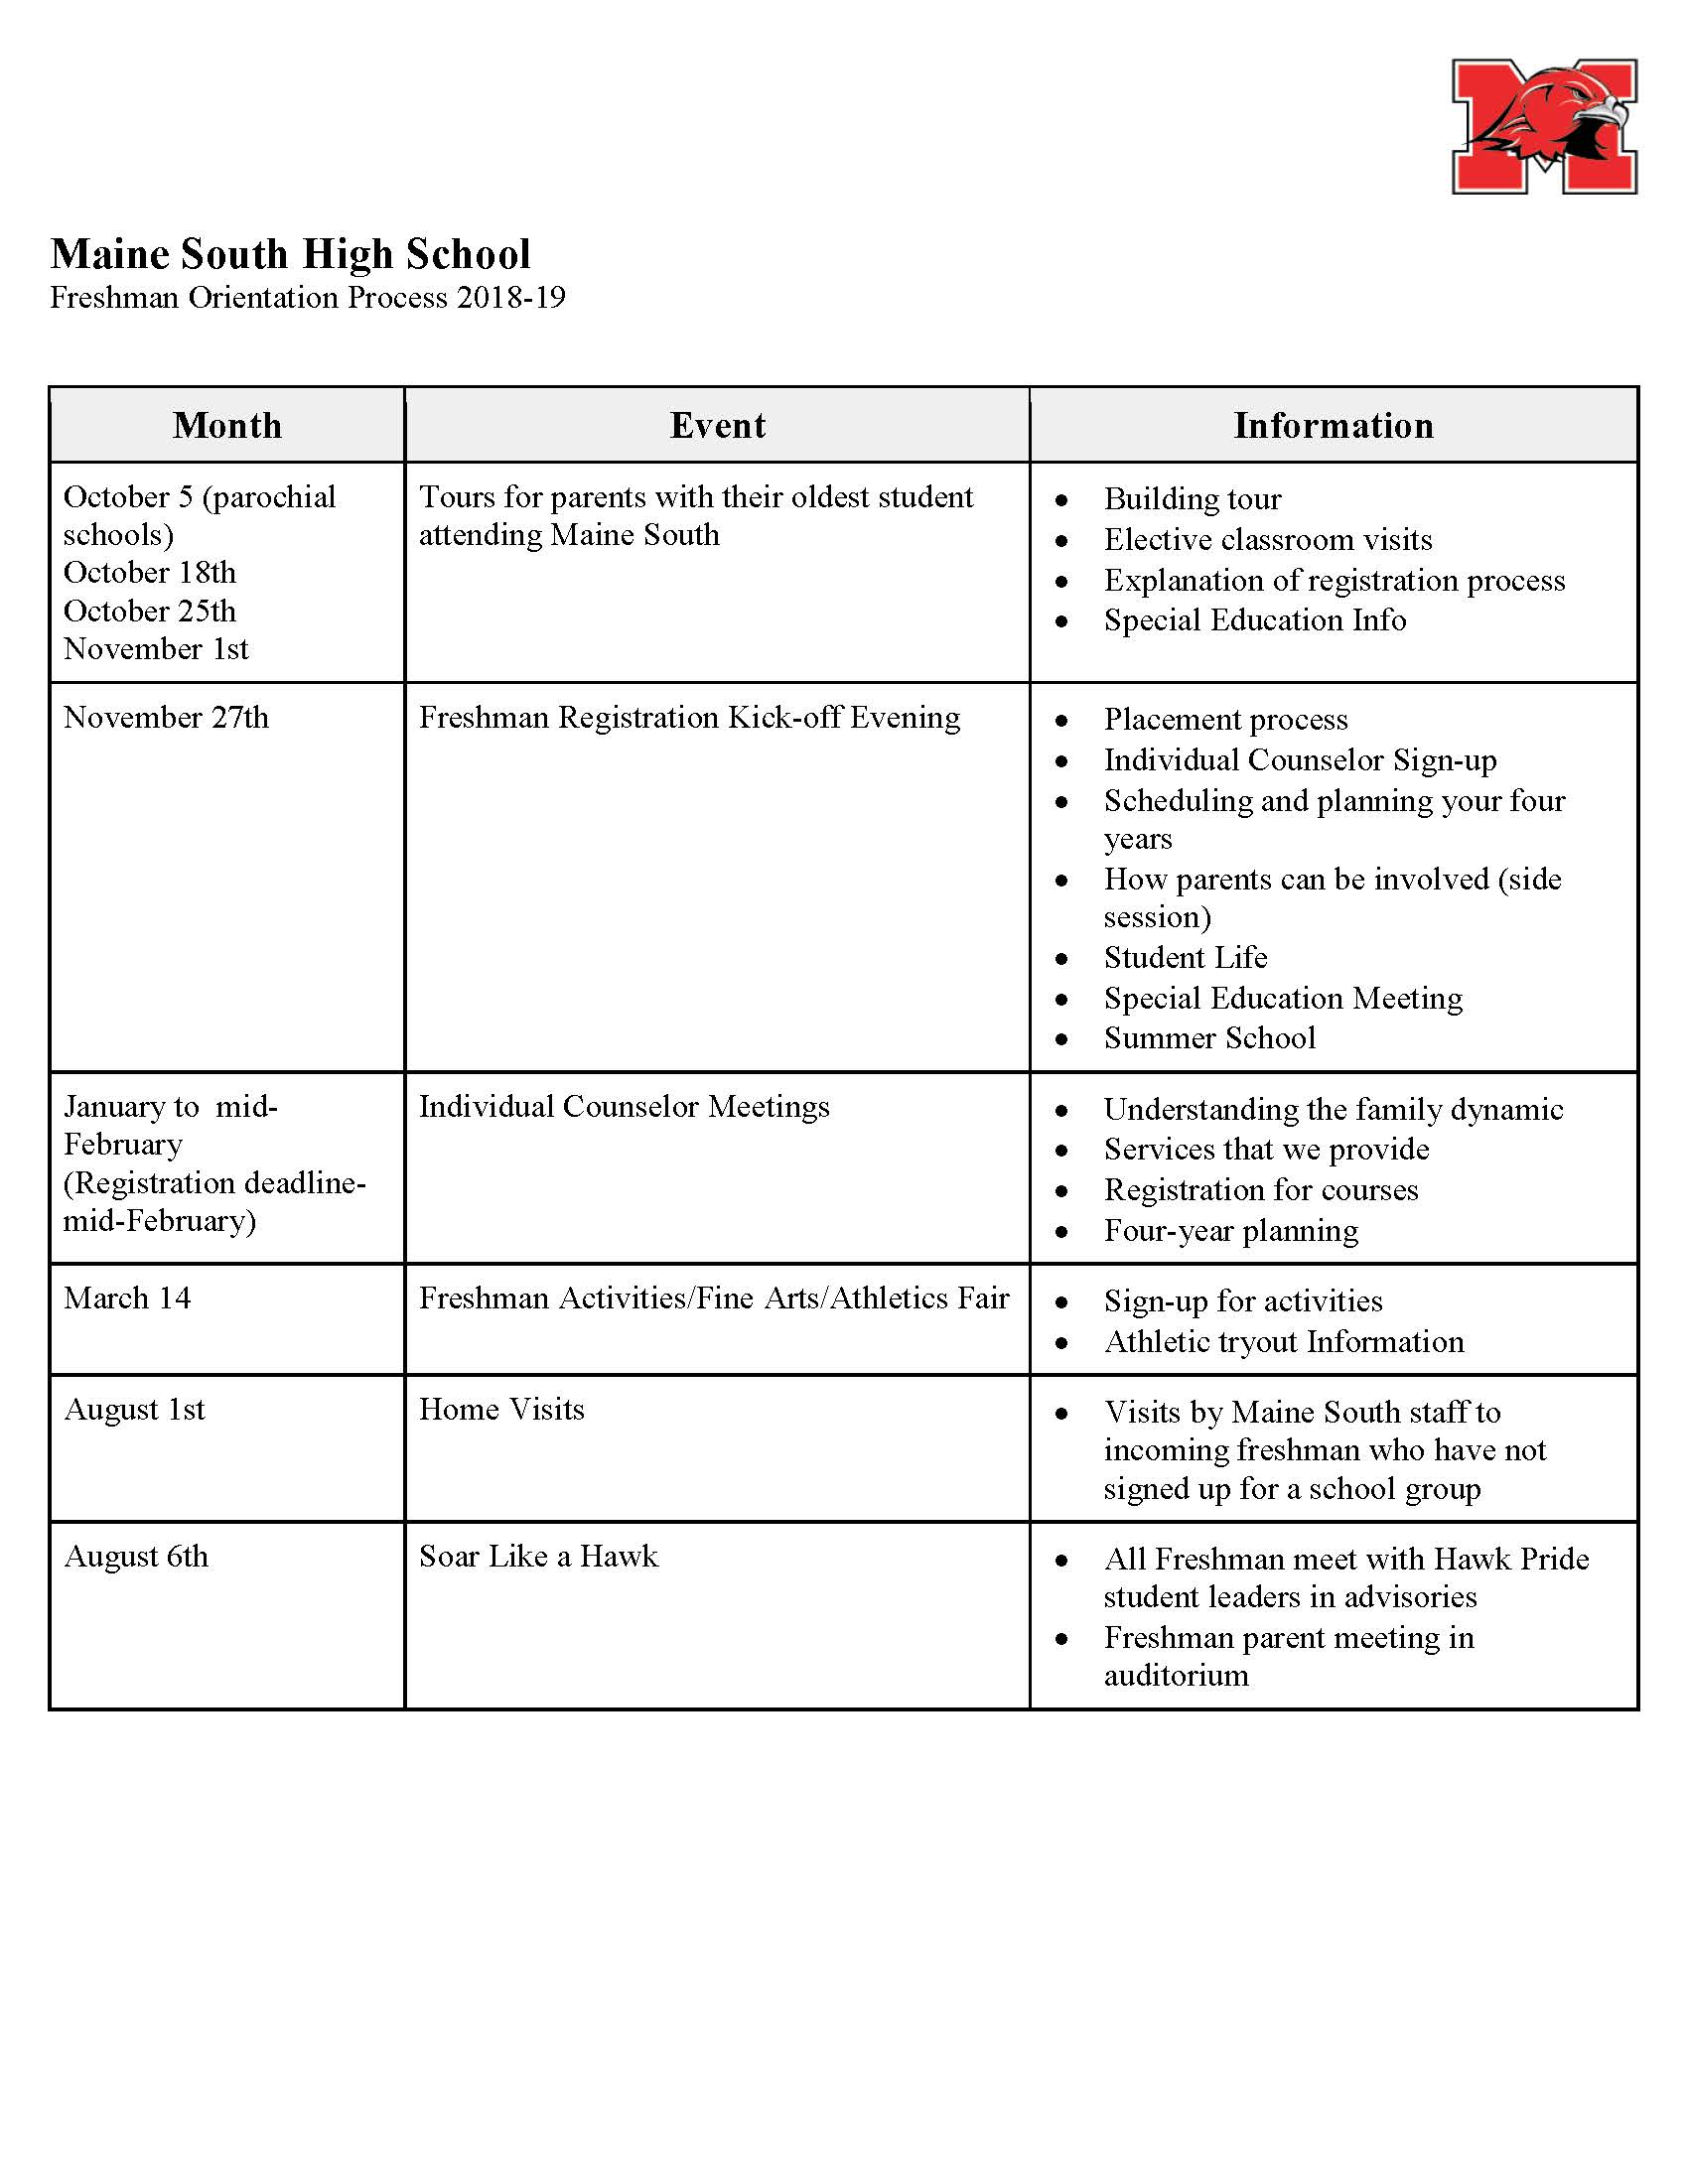 Maine South Freshman Orientation Process Overview 2018 19 Page 1